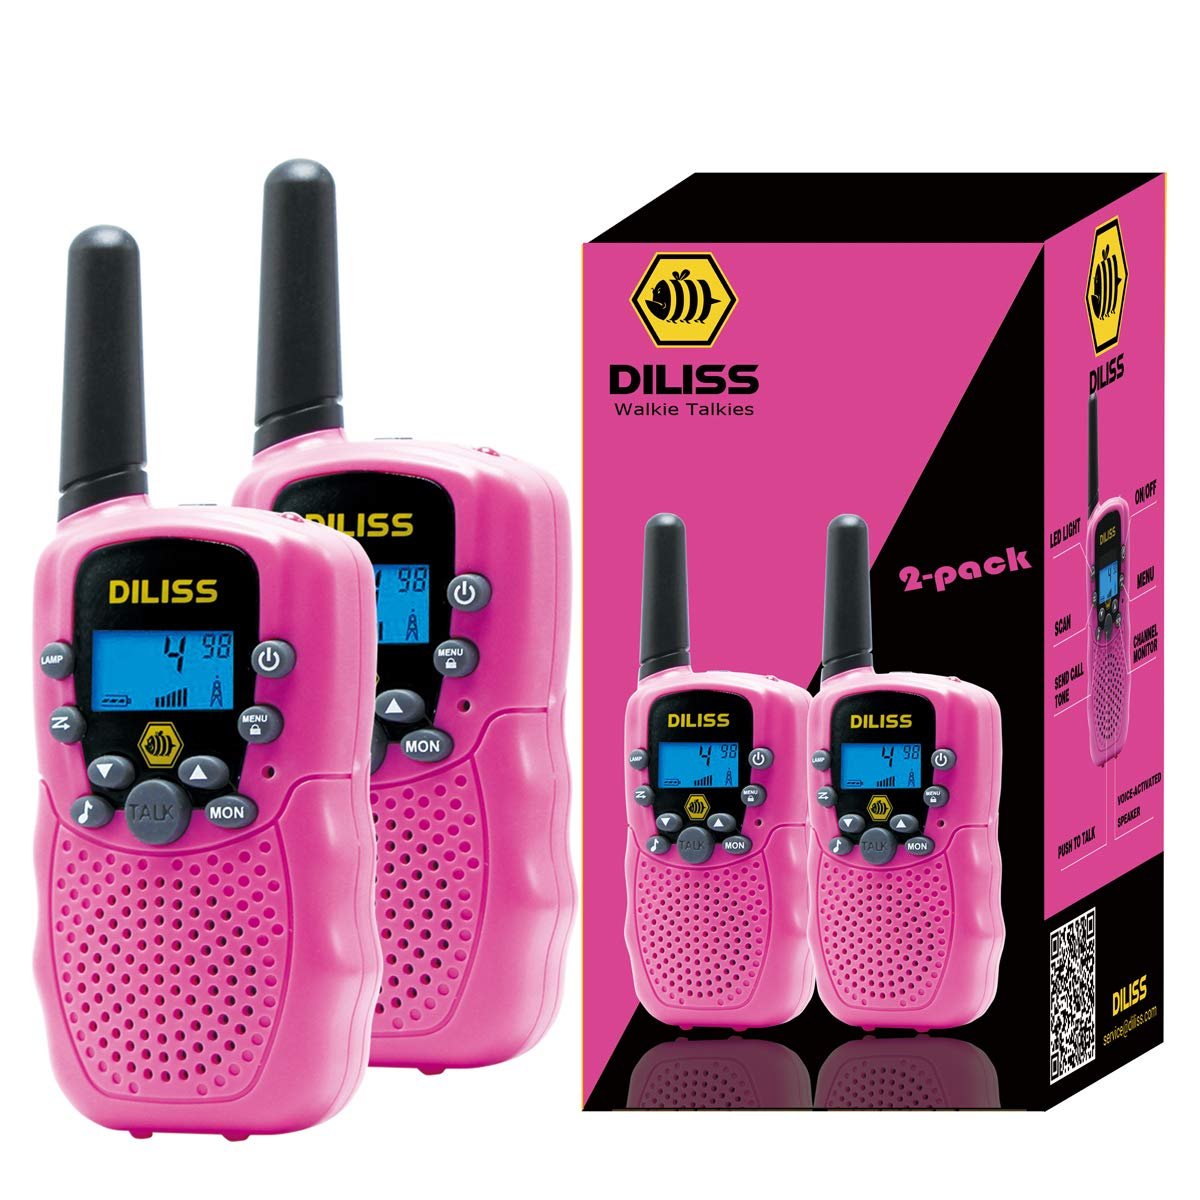 Walkie Talkies for Kids, 22 Channels FRS/GMRS Uhf Two Way Radios 4 Mile Handheld Mini Kids Walkie Talkies for Kids Best Gifts Kids Toys Built in Flashlight 2 Pack - Pink